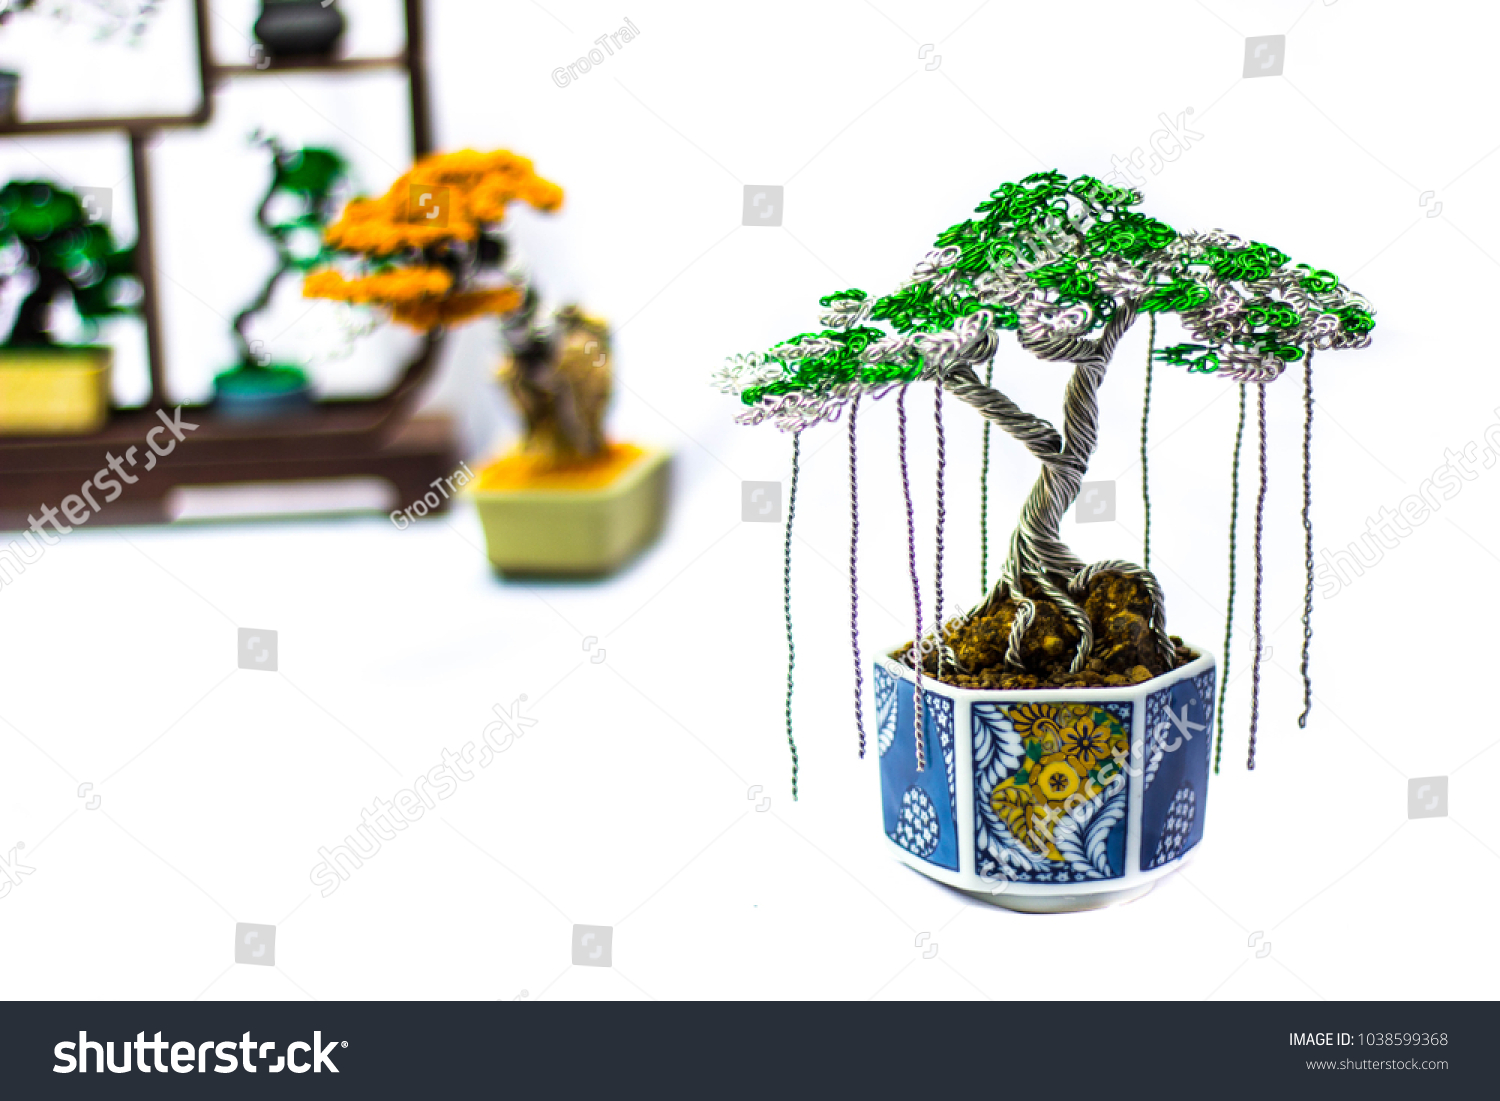 Handmade Invention Bonsai Trees Imitation Nature Stock Photo Edit What Does Wiring A Do The Of Material Is Aluminum